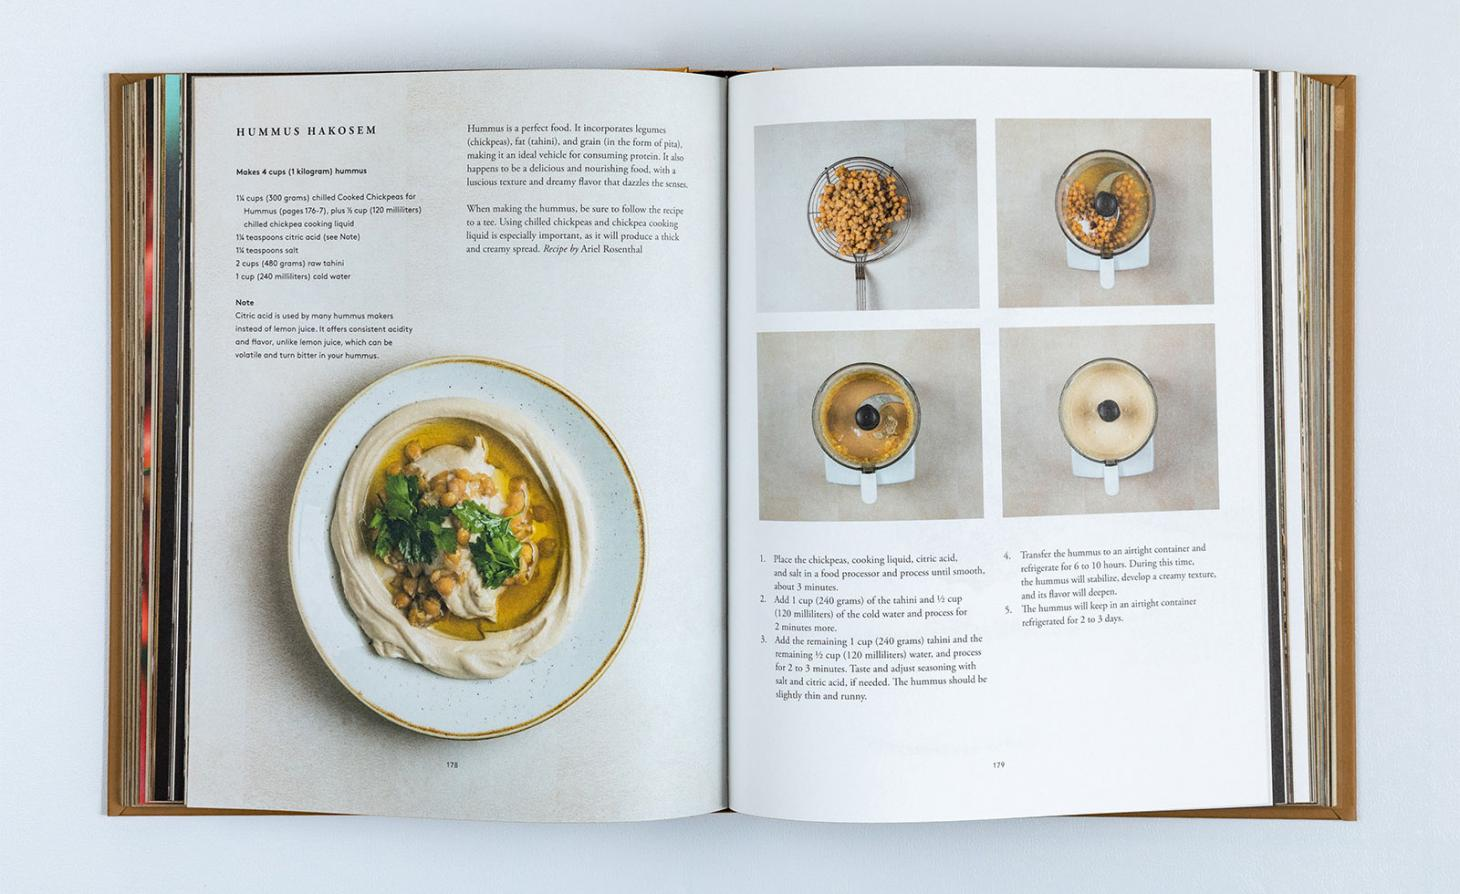 On the Hummus Route, spread with photography by Yaron Brener